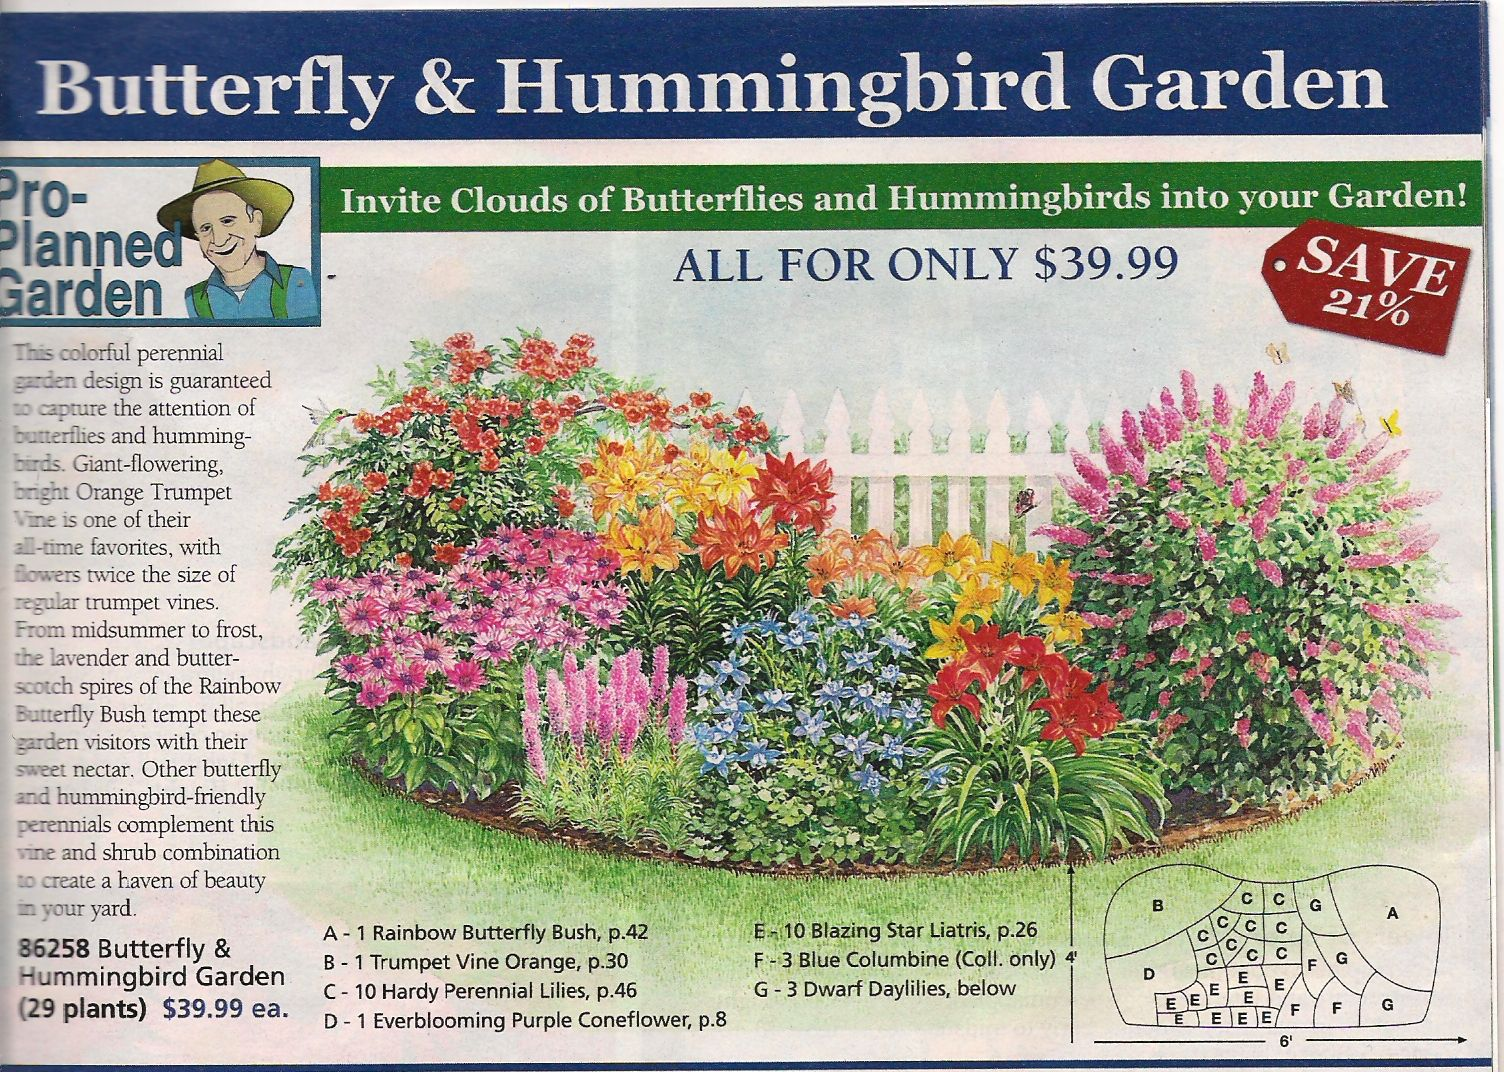 Garden plan from michigan bulb co for a butterfly garden for Garden planning and design